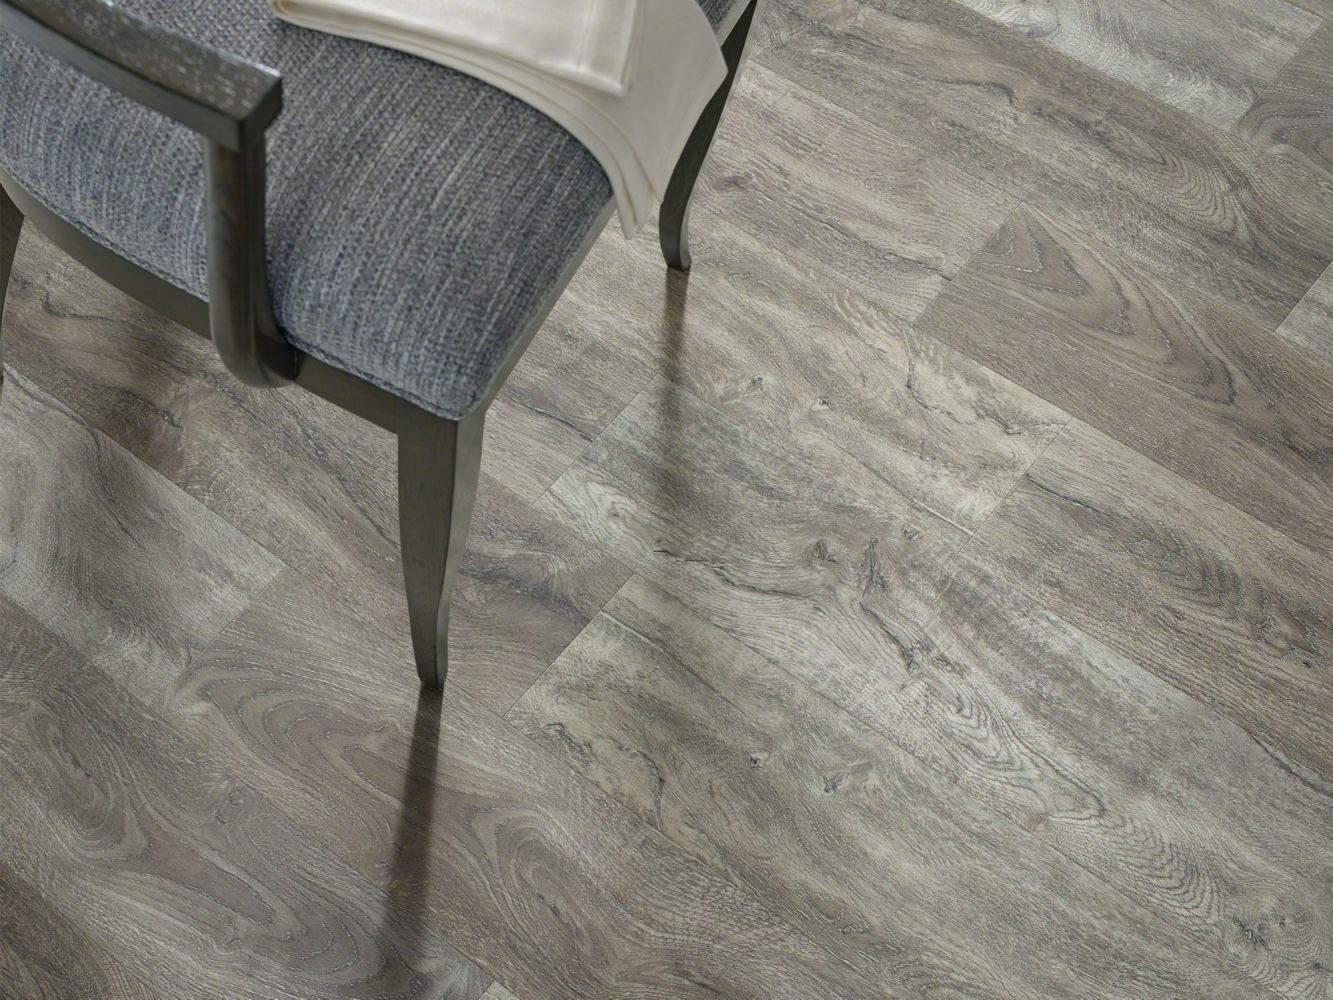 Shaw Floors Resilient Property Solutions Supino HD Plus Giardino 05049_VE231